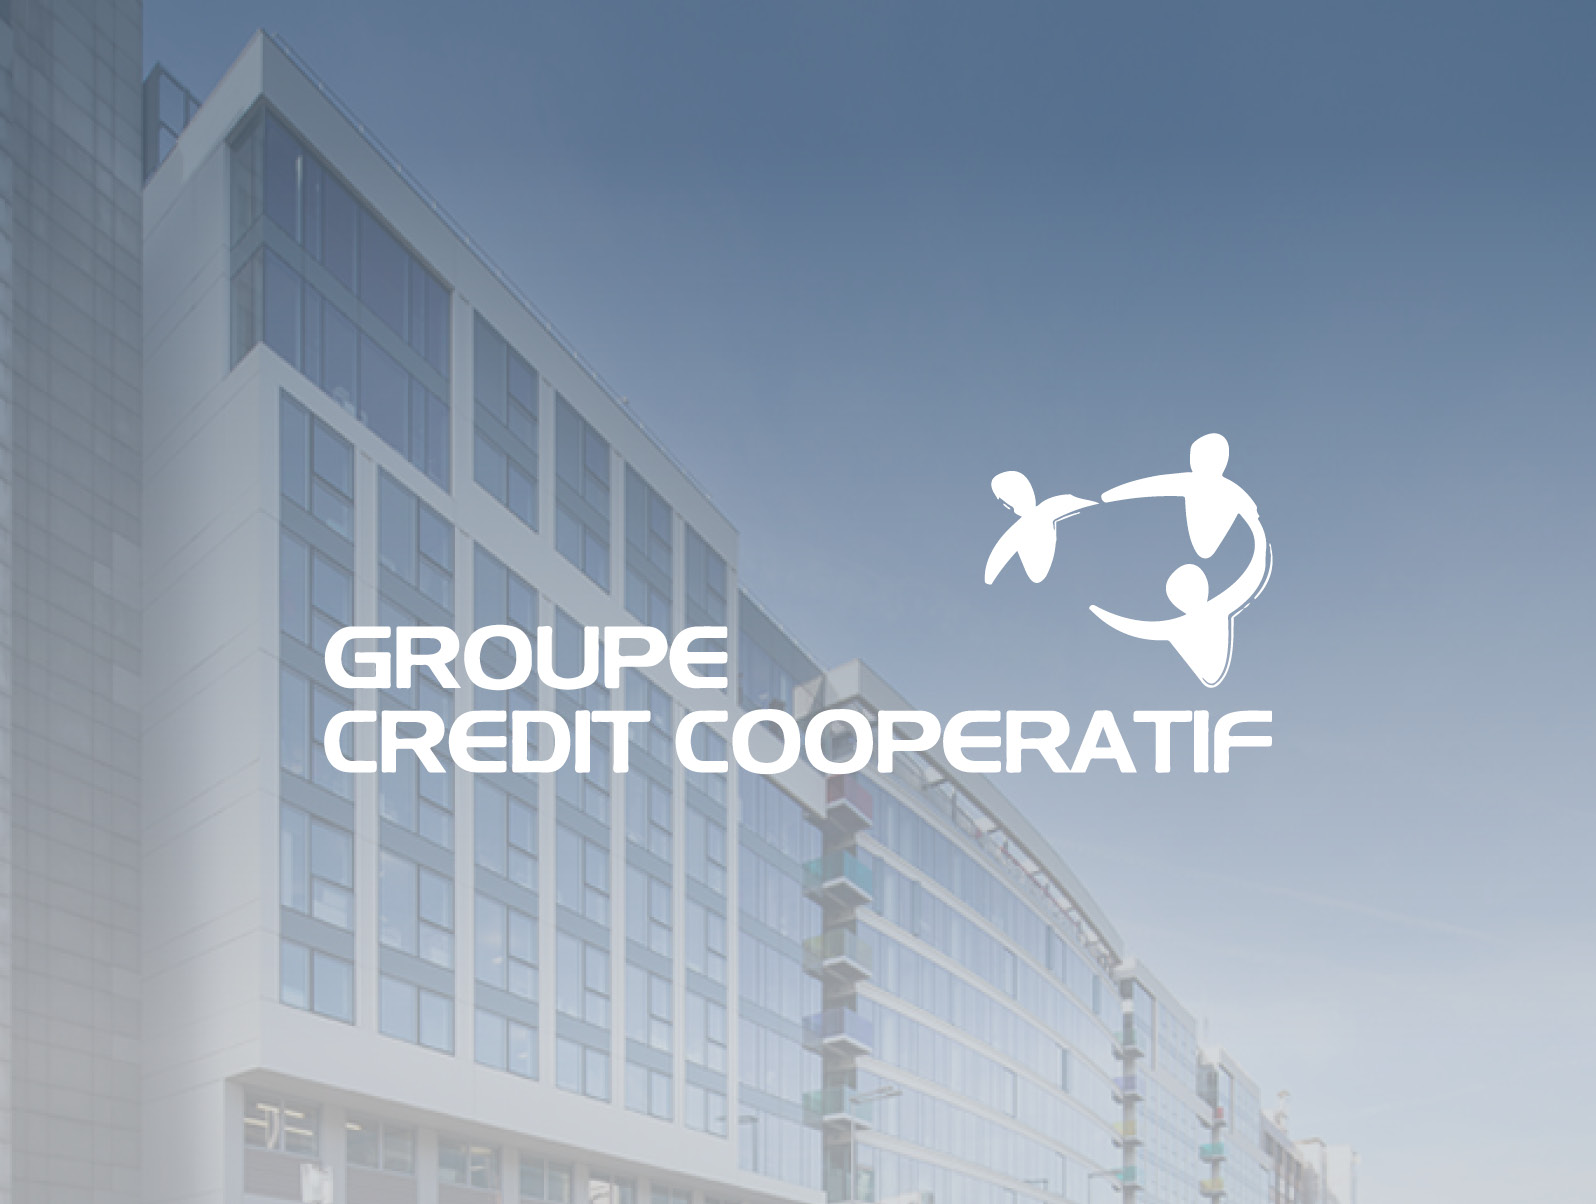 Credit-cooperatif$-Customer Pages